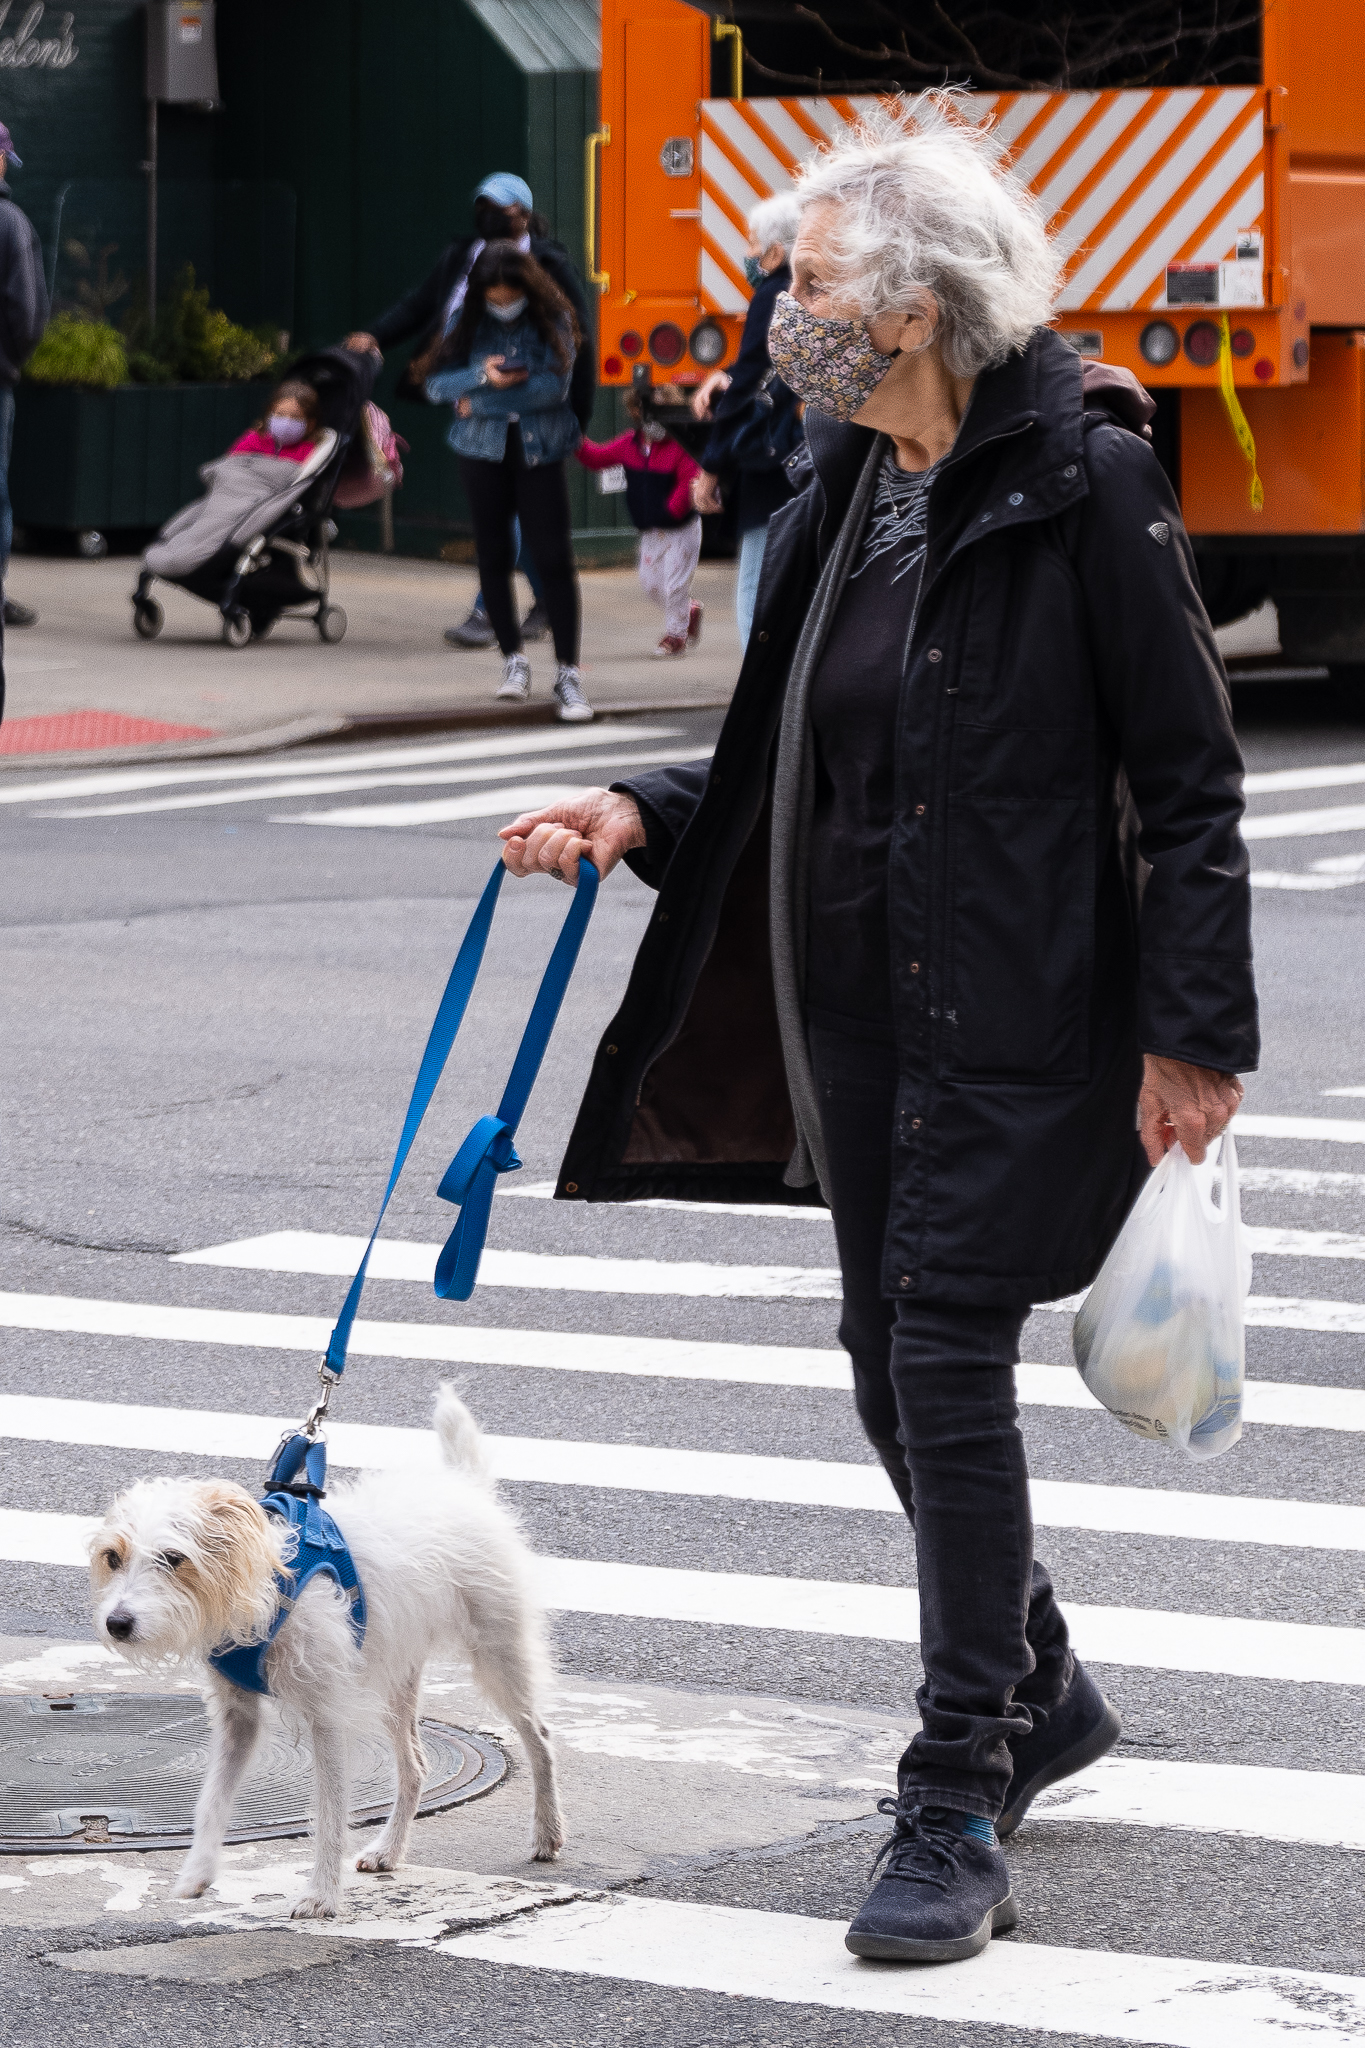 A detailed photo of a lady crossing the street with a dog on a leash